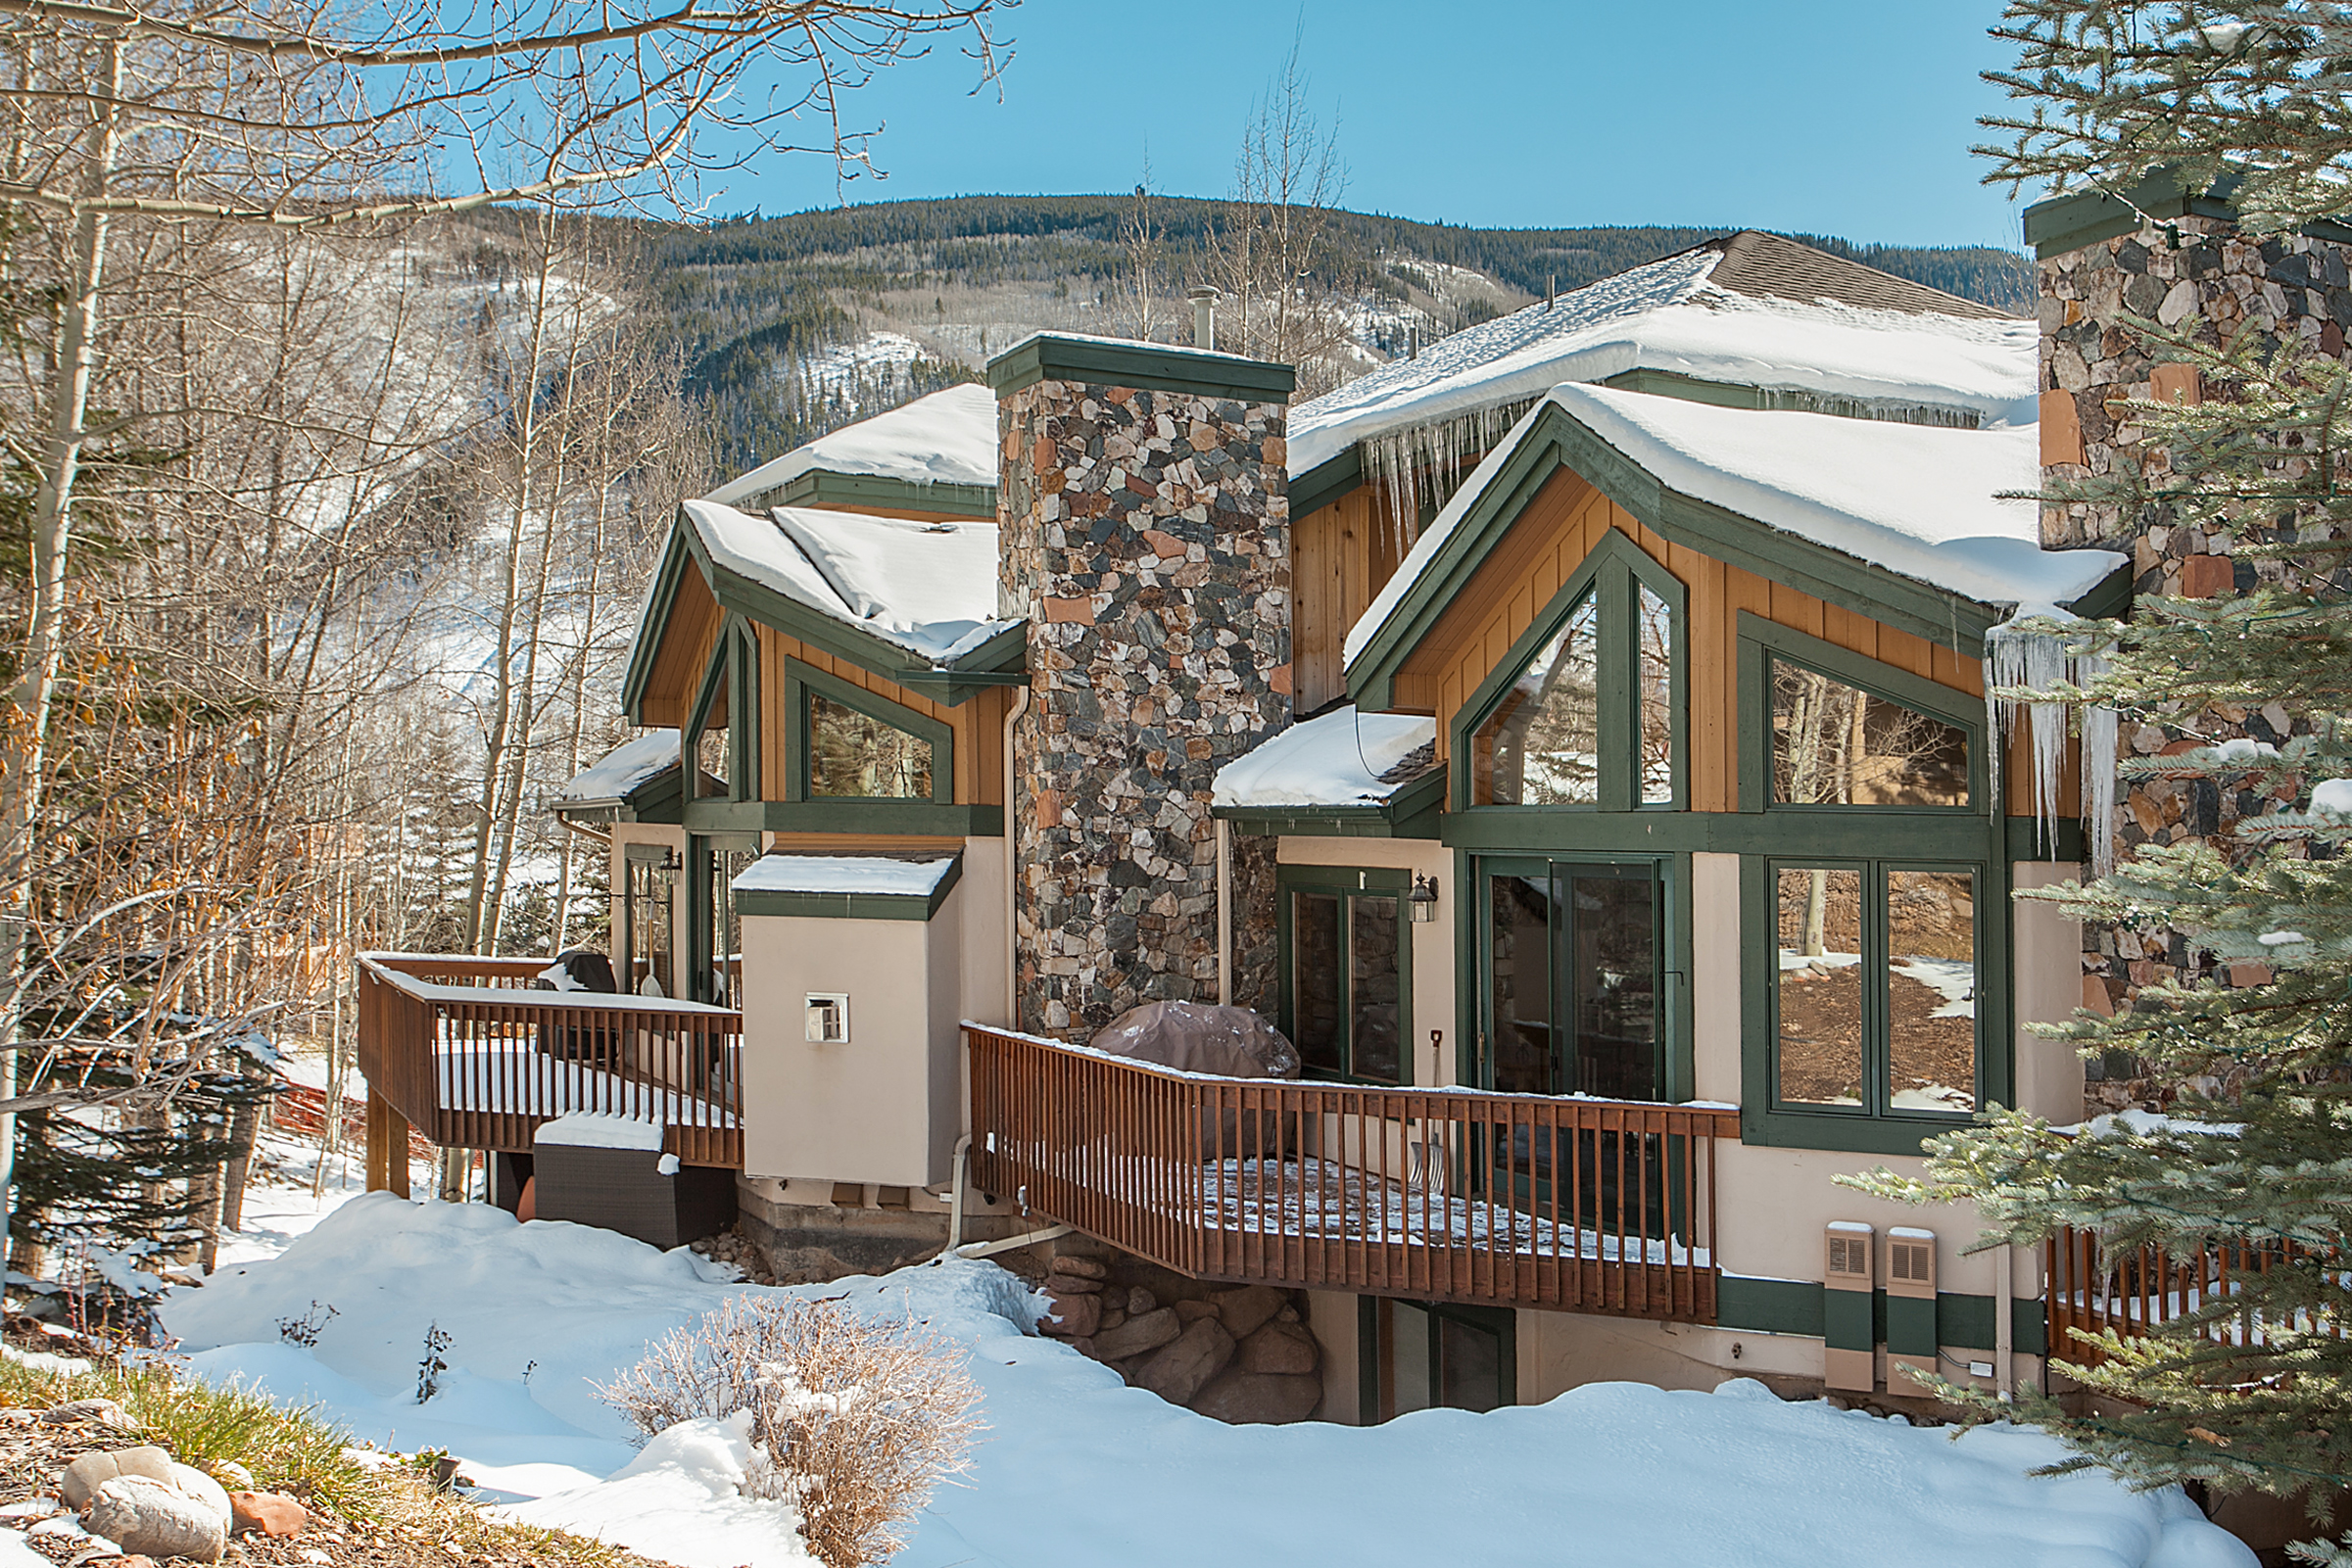 Single Family Home for Sale at Great Value in the Town of Vail 1890 Lions Ridge Loop #8 Vail, Colorado, 81657 United States